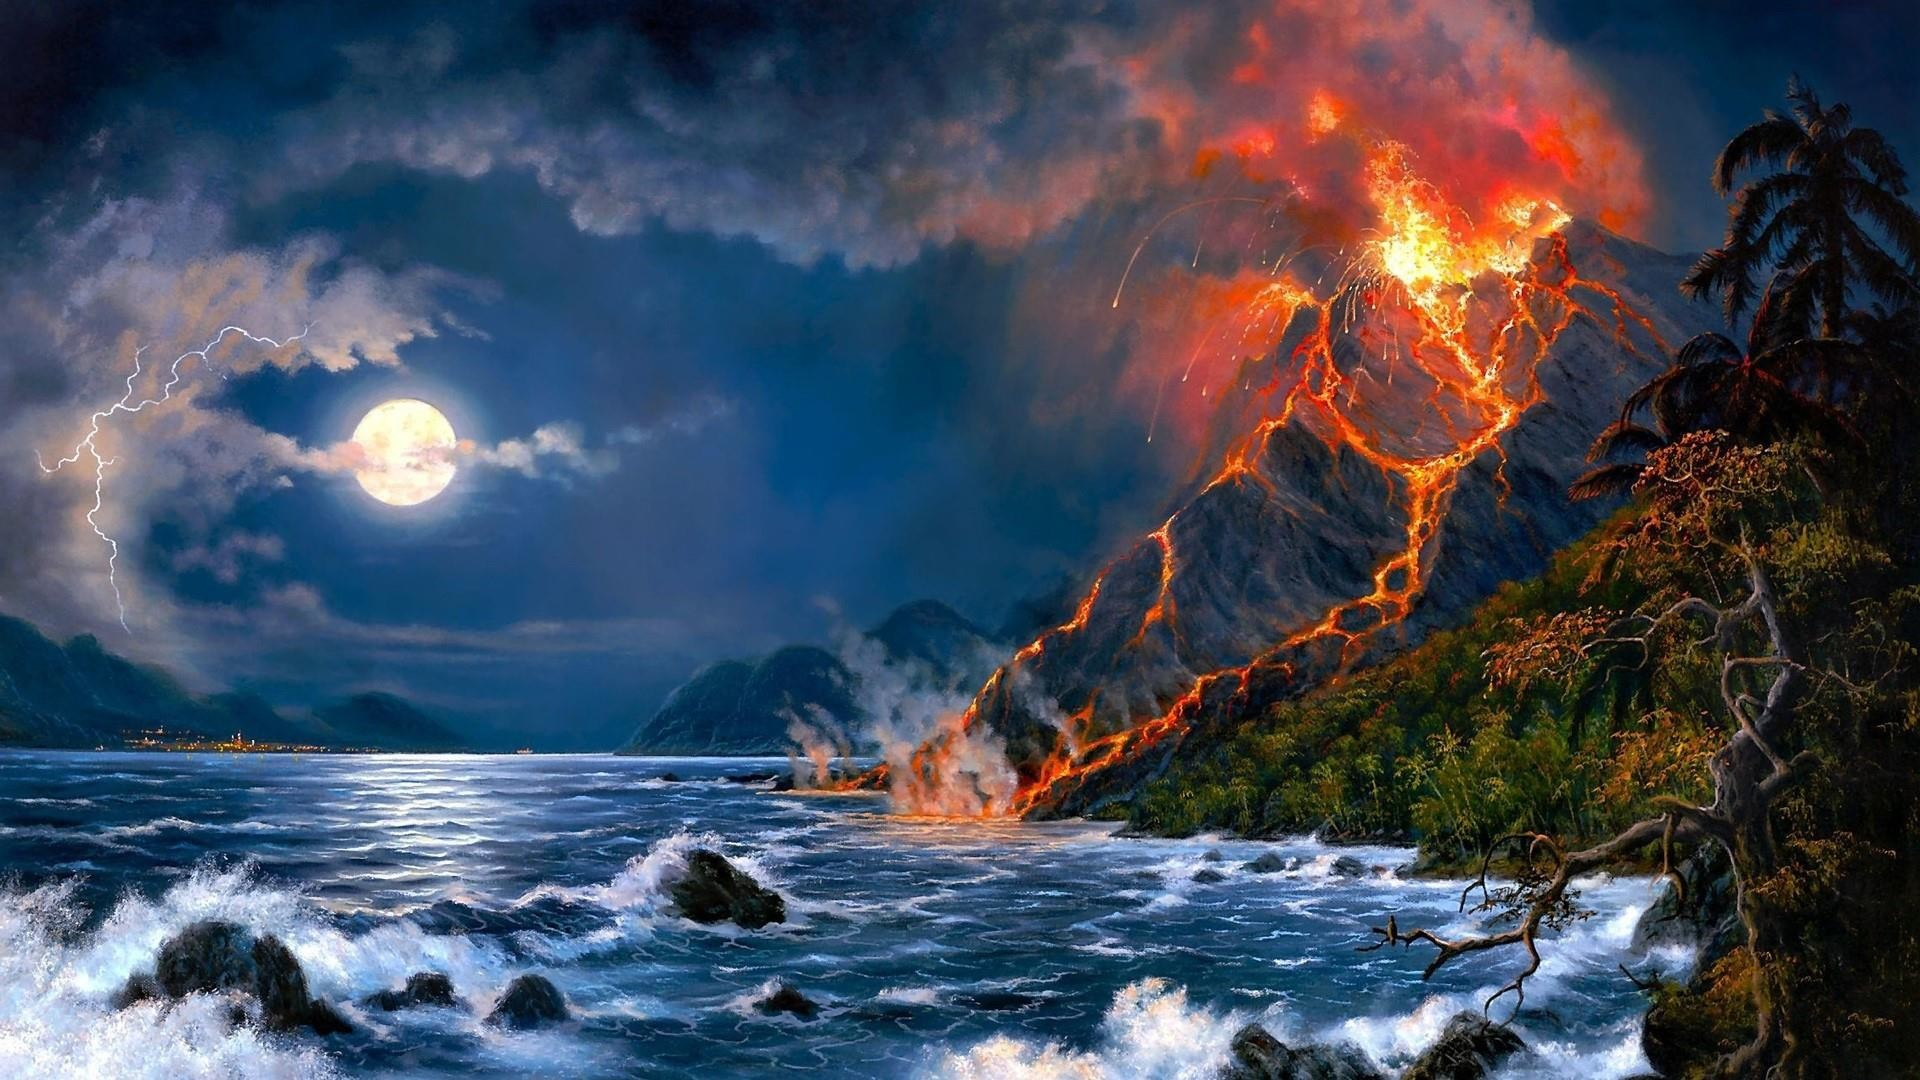 Res: 1920x1080, Volcano Eruption - Fantasy Art Wallpaper   Wallpaper Studio 10   Tens of  thousands HD and UltraHD wallpapers for Android, Windows and Xbox